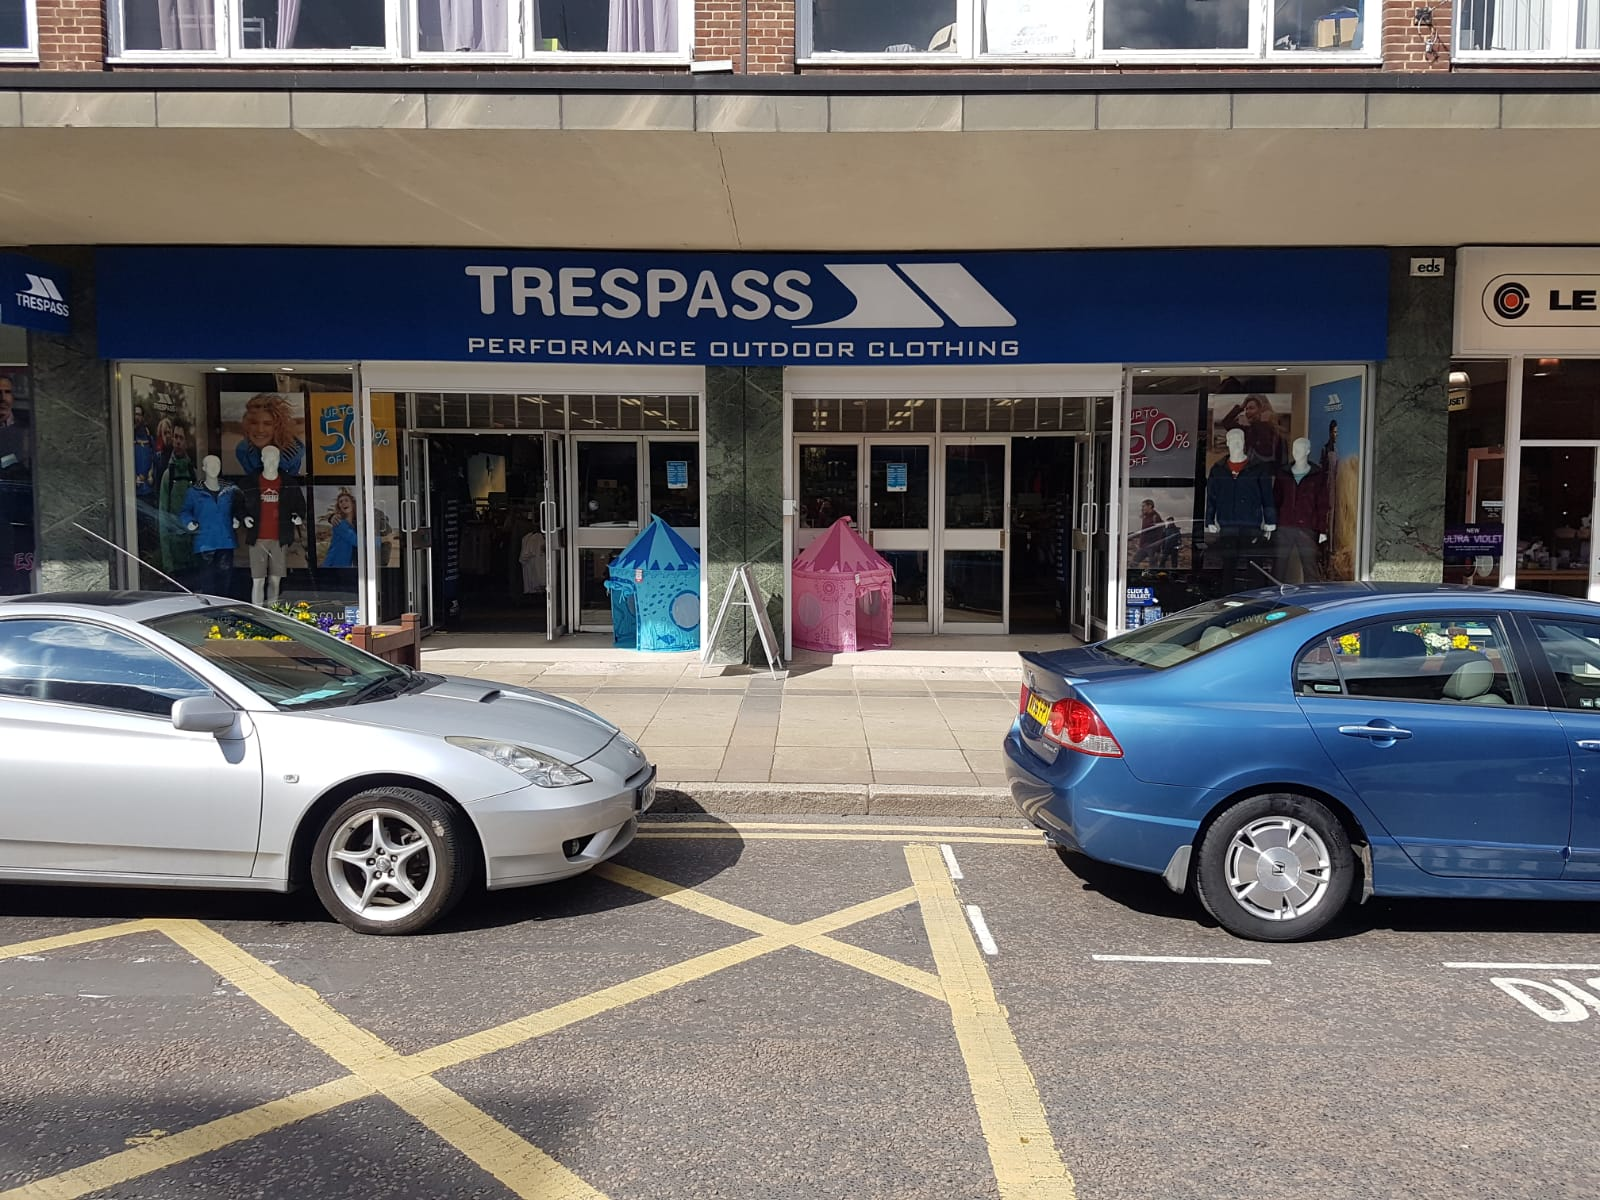 Trespass - Solihull, West Midlands B91 3AT - 01217 094470 | ShowMeLocal.com